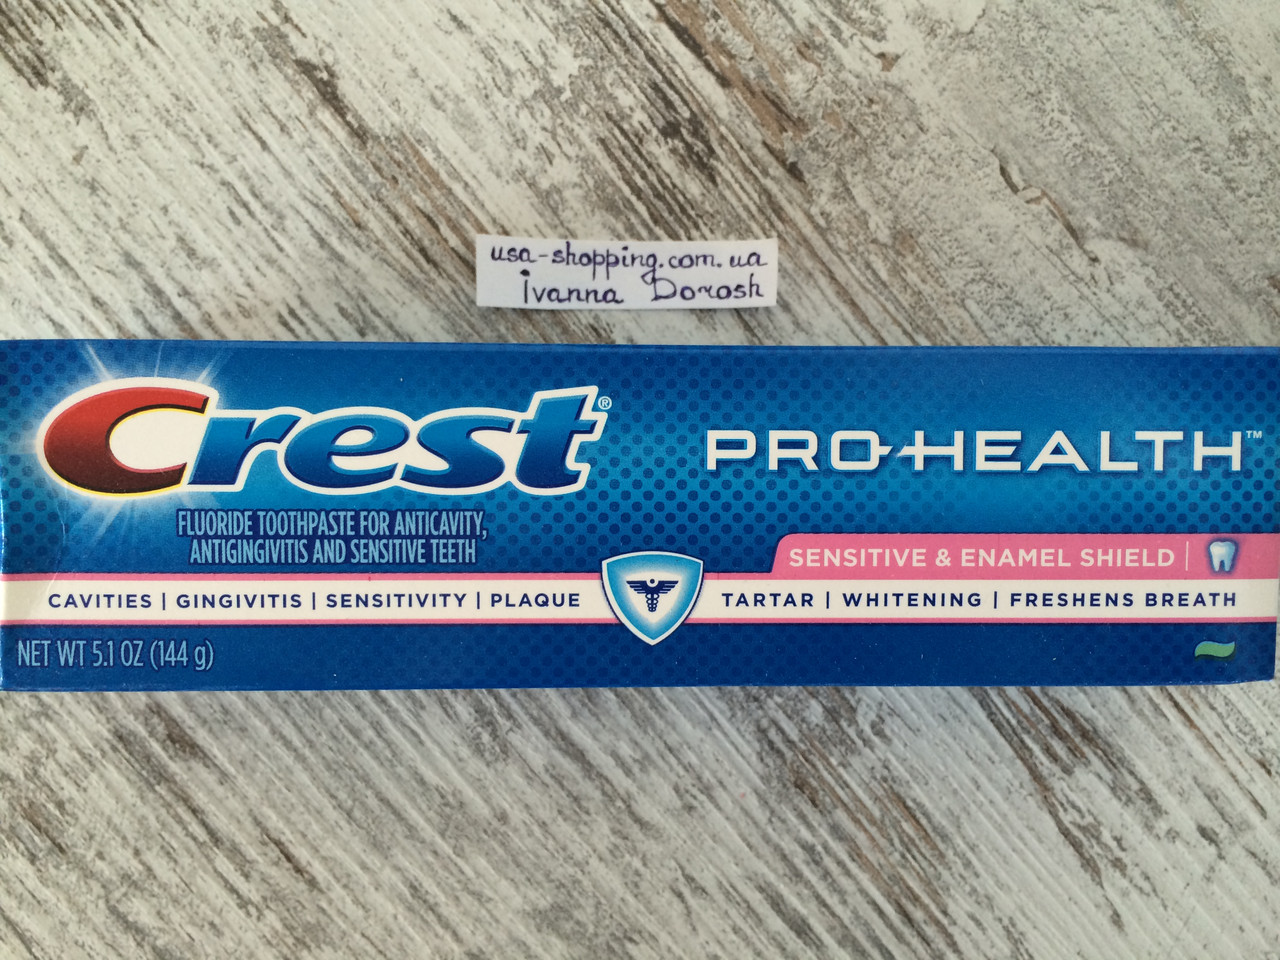 Лечение зубов Crest Pro-Health Advanced Sensitive & Enamel Shield